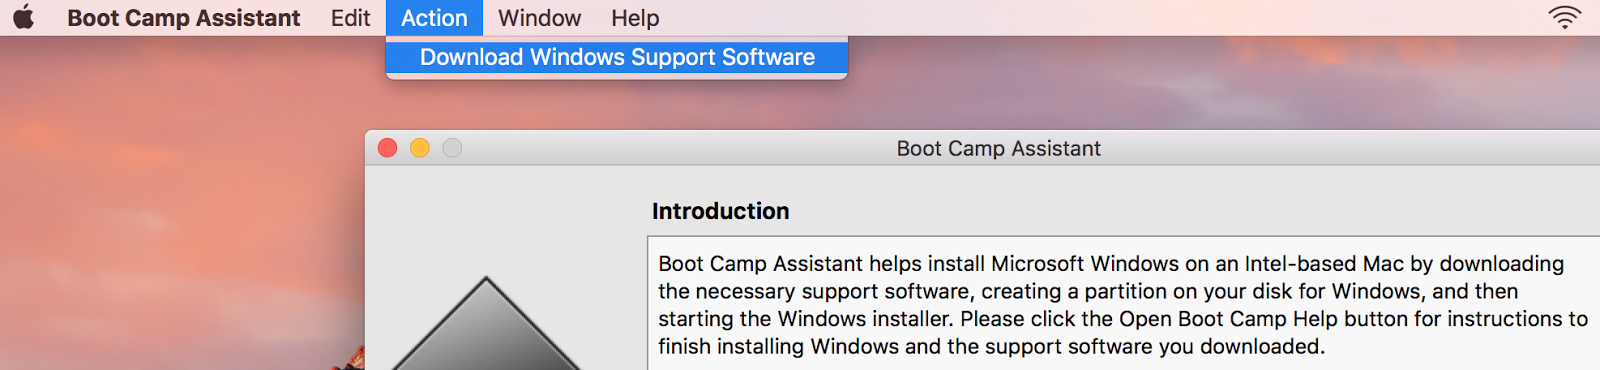 Study Swift: Mac Technique: How to install Windows Support